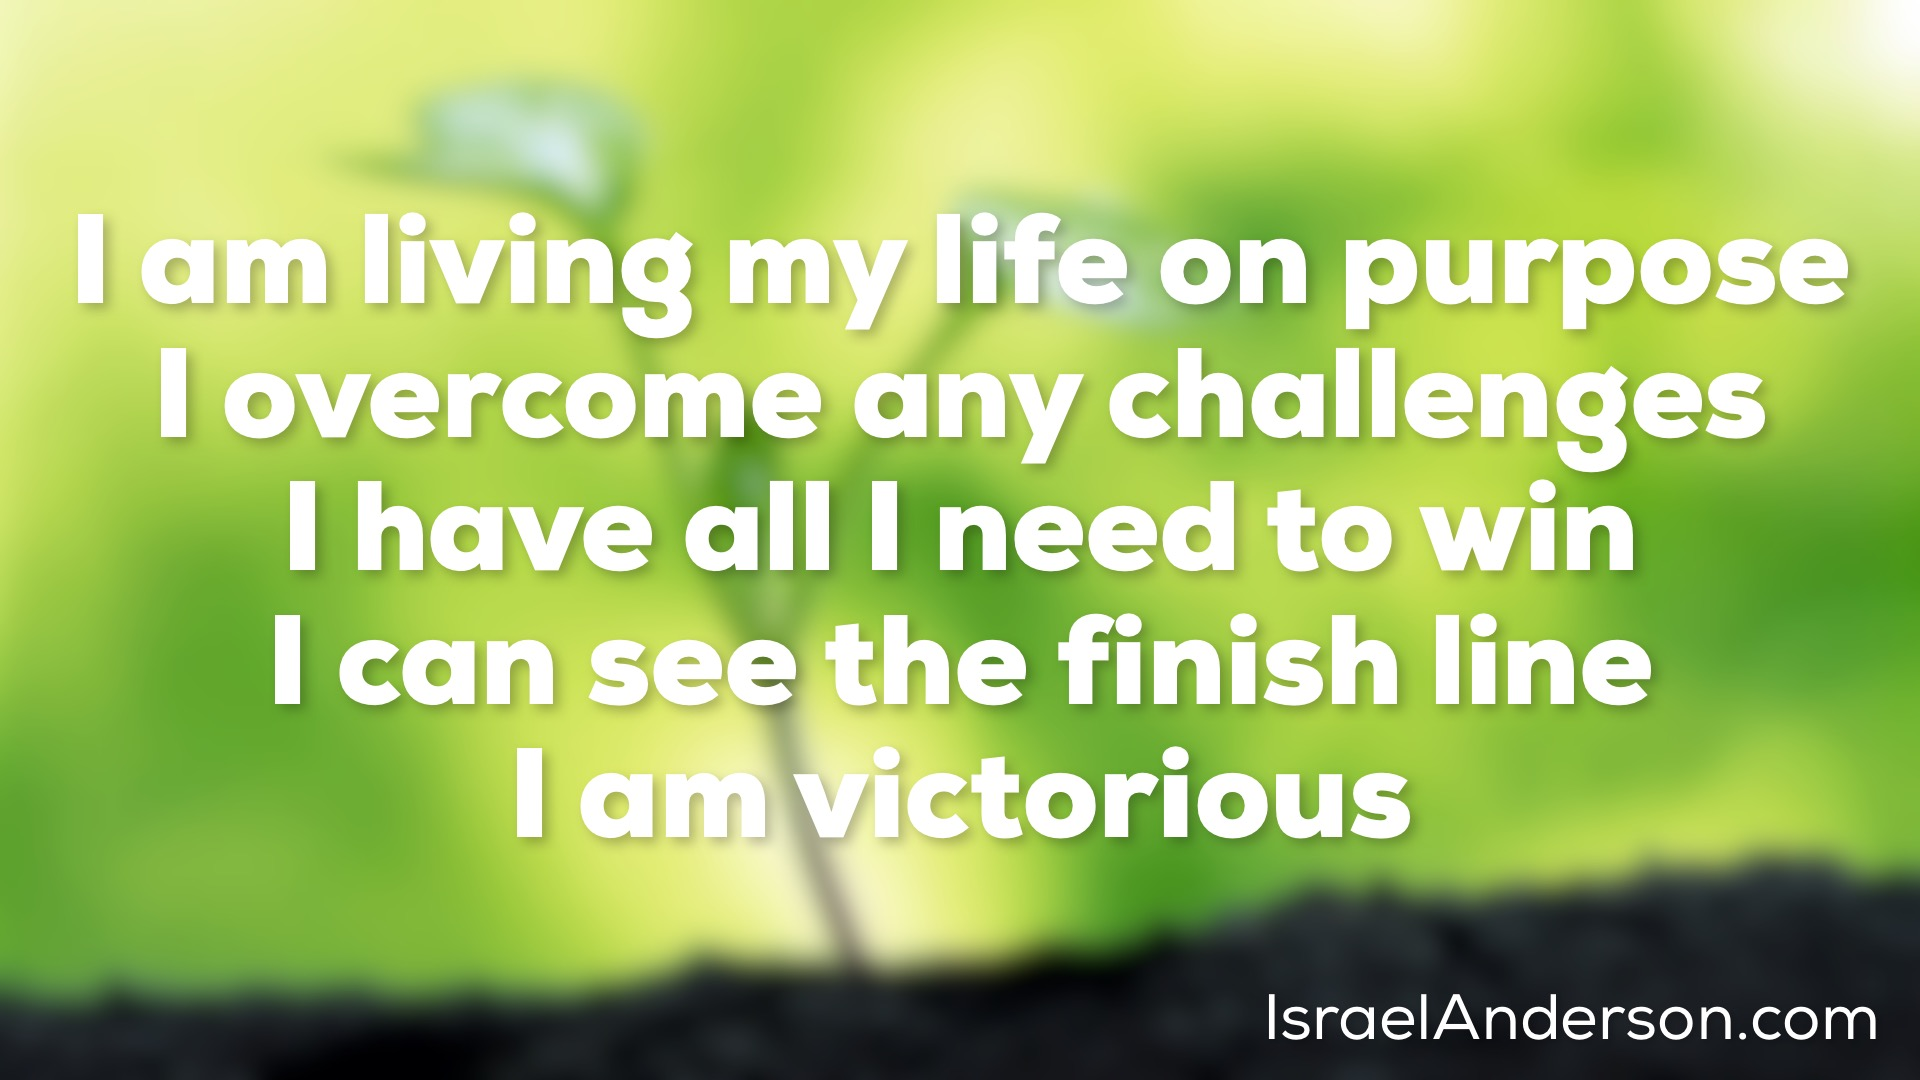 Iam living my life on purpose I overcome any challenges I have all I need to win I can see thefinish line I am victorious